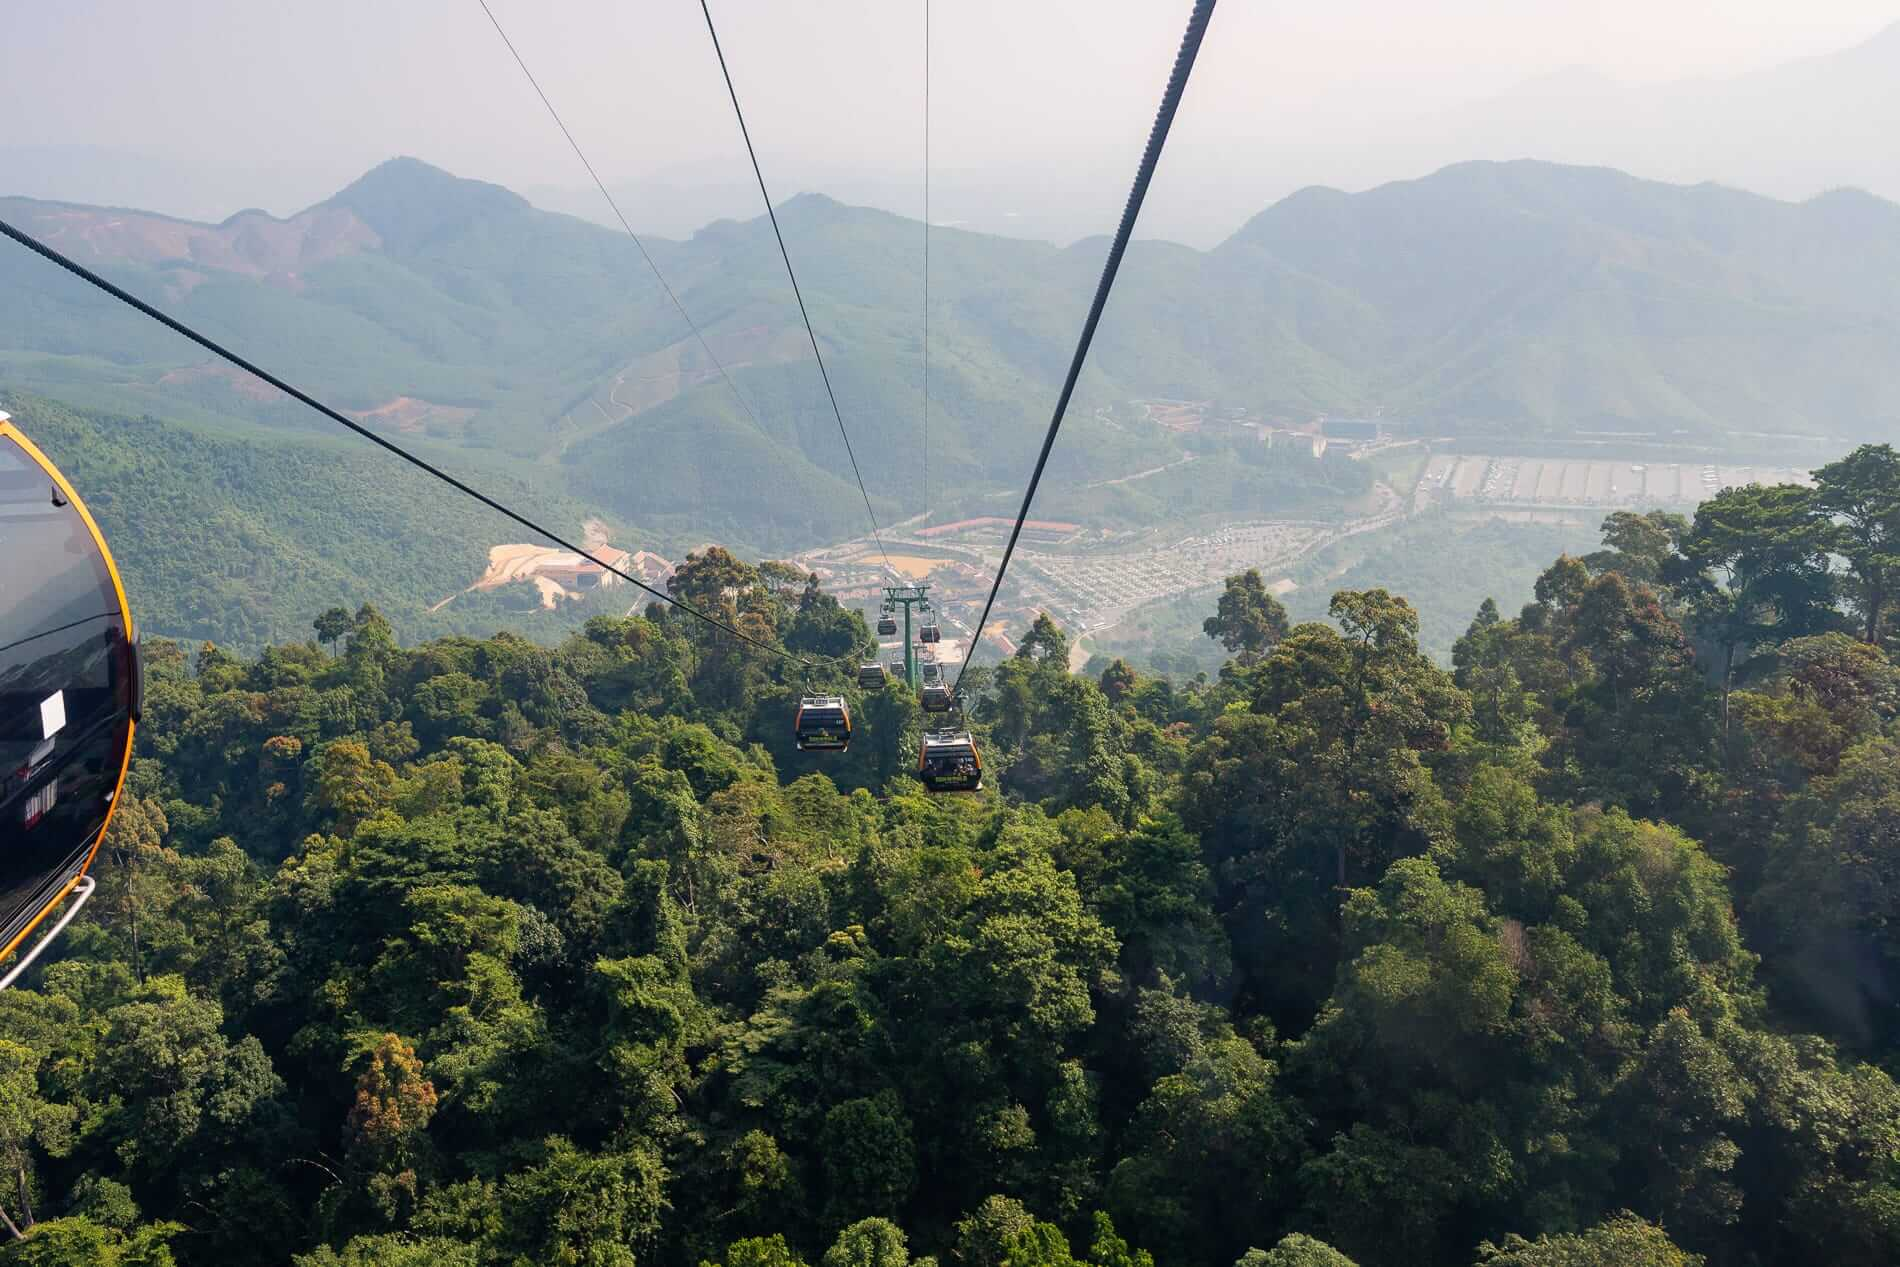 mountain view from the cable car